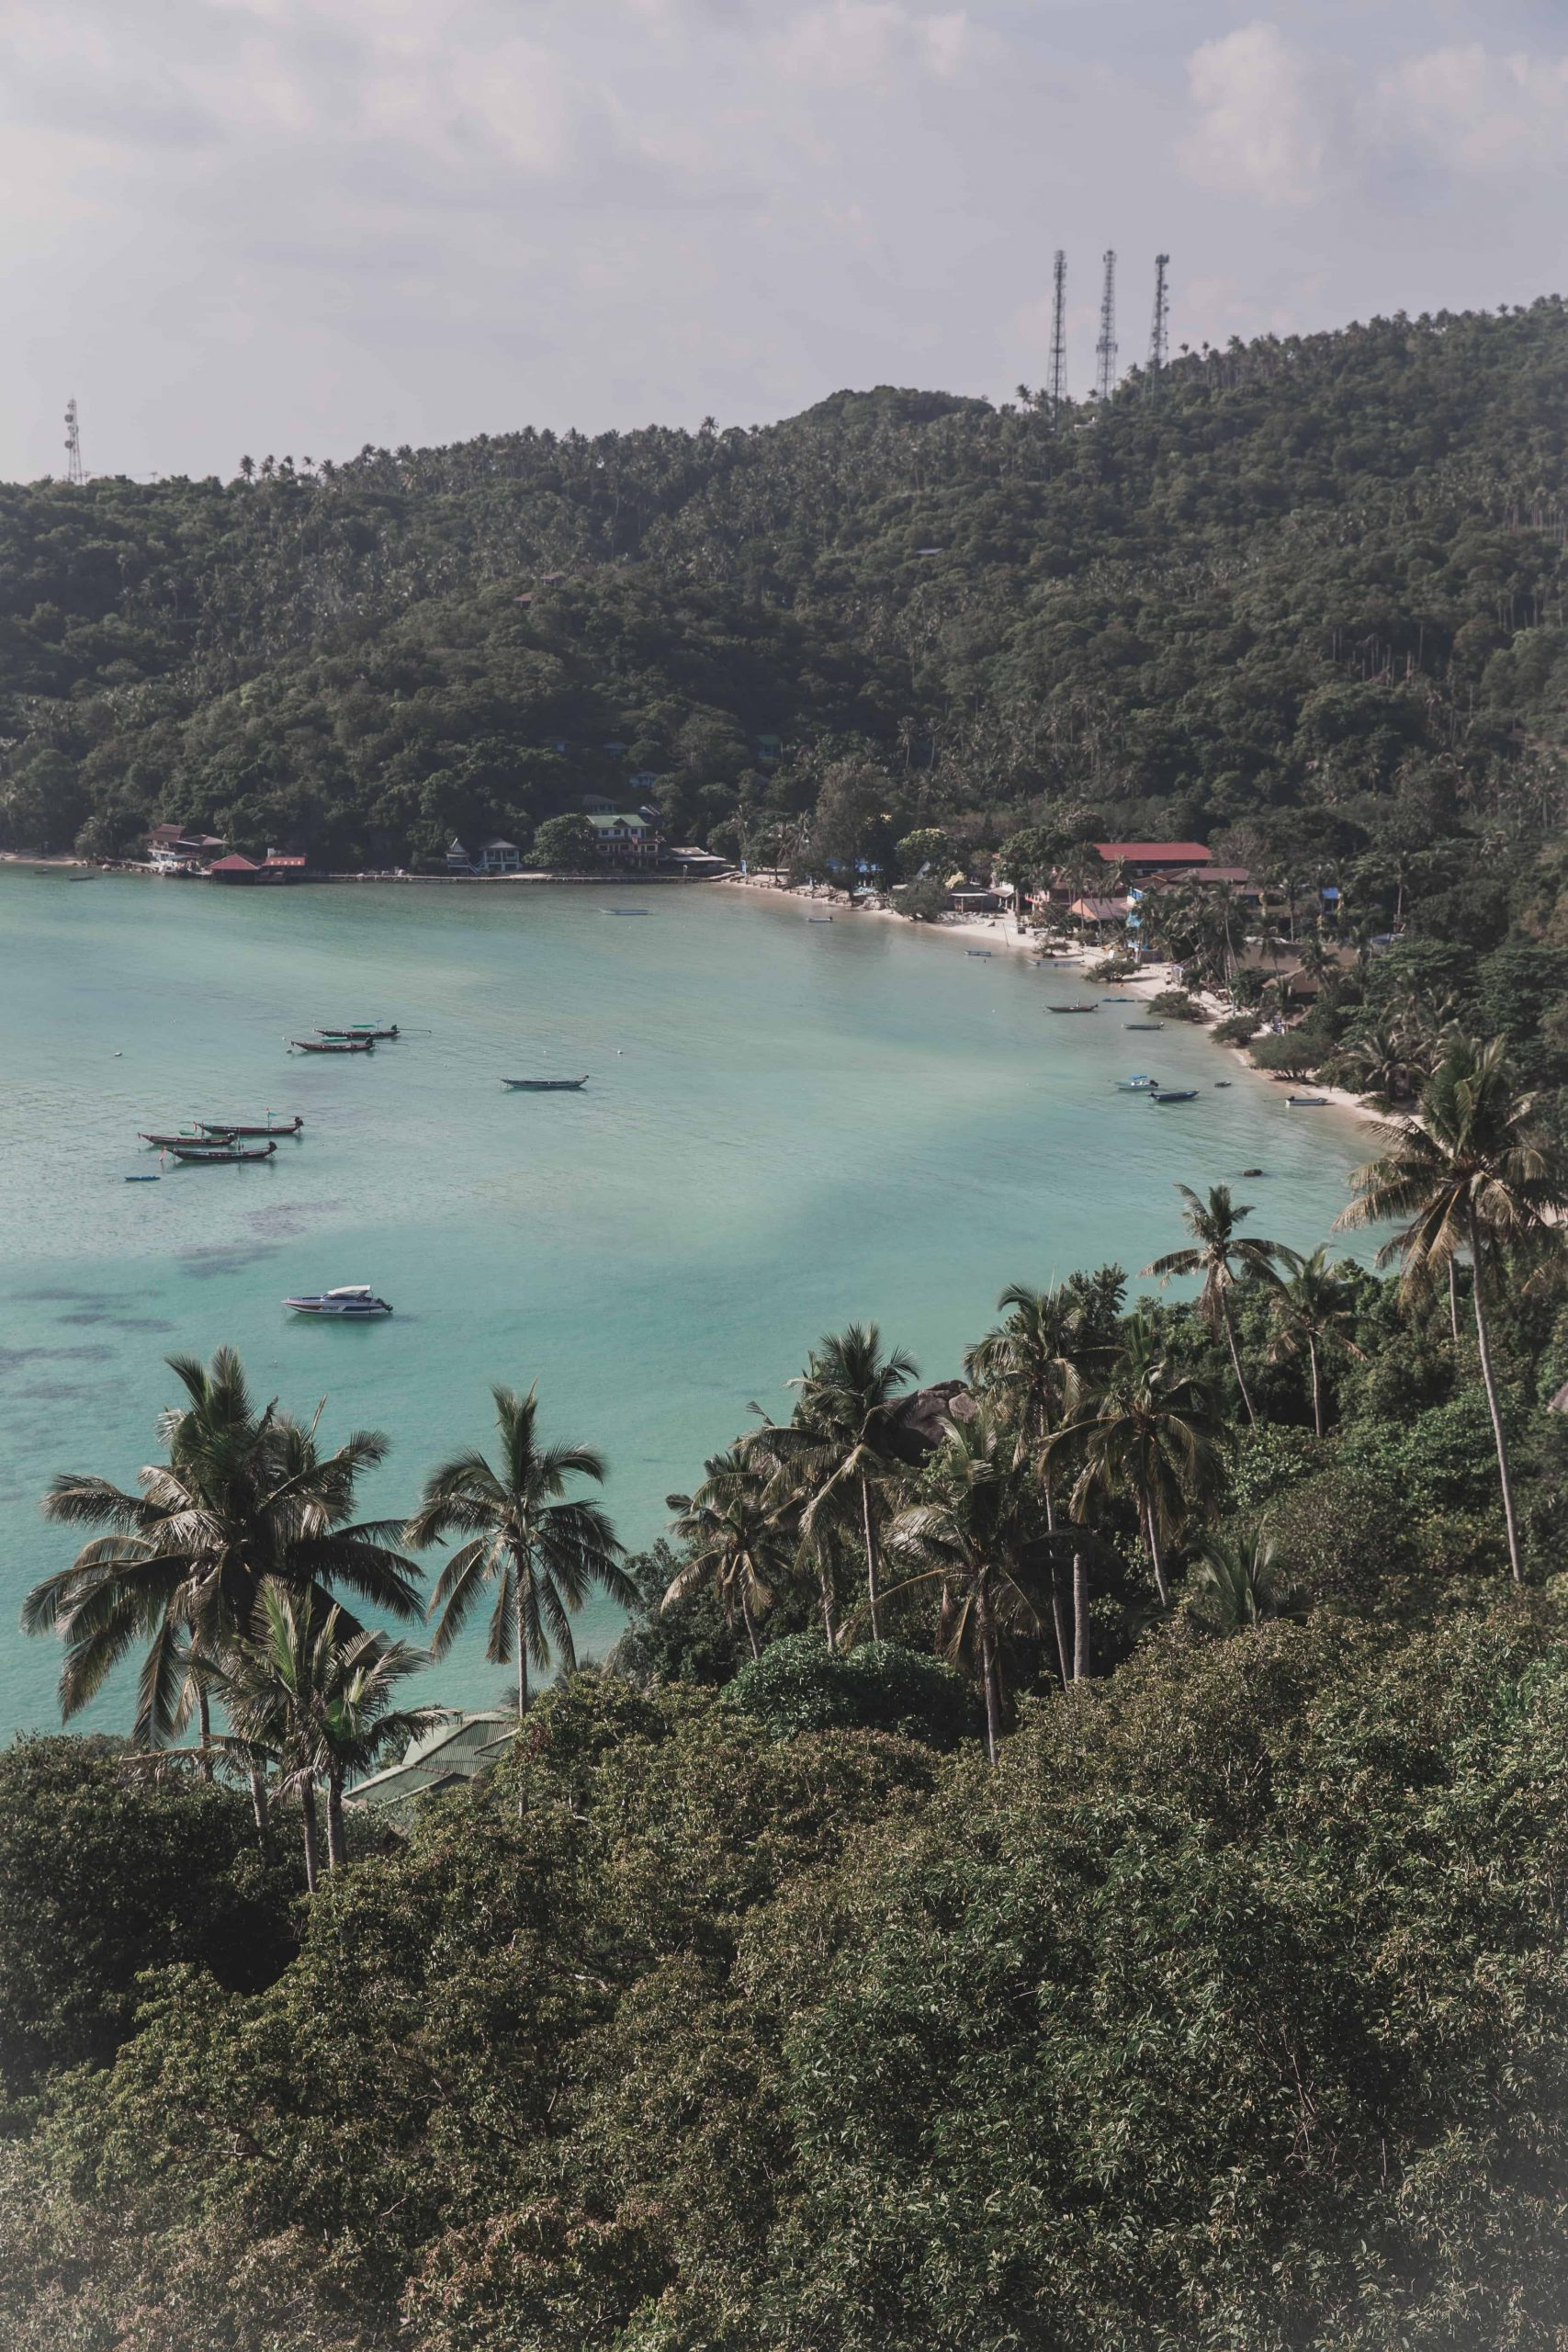 John Suwan Viewpoint in Koh Tao, Thailand has a view of blue water, beaches, and palm trees